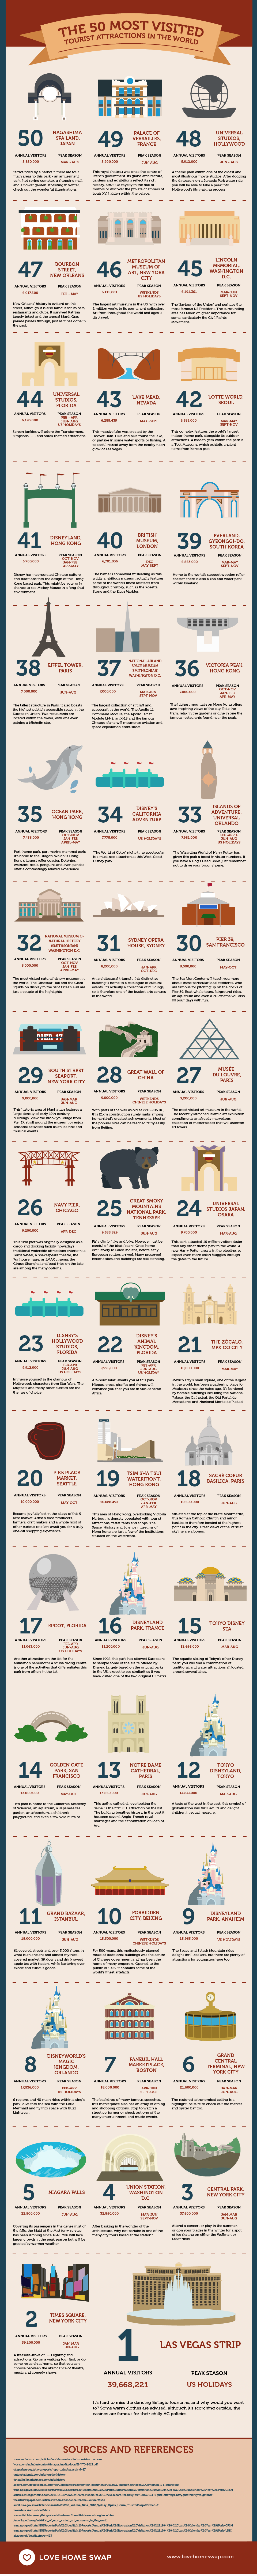 The 50 Most Visited Tourist Attractions in the World [infographic]